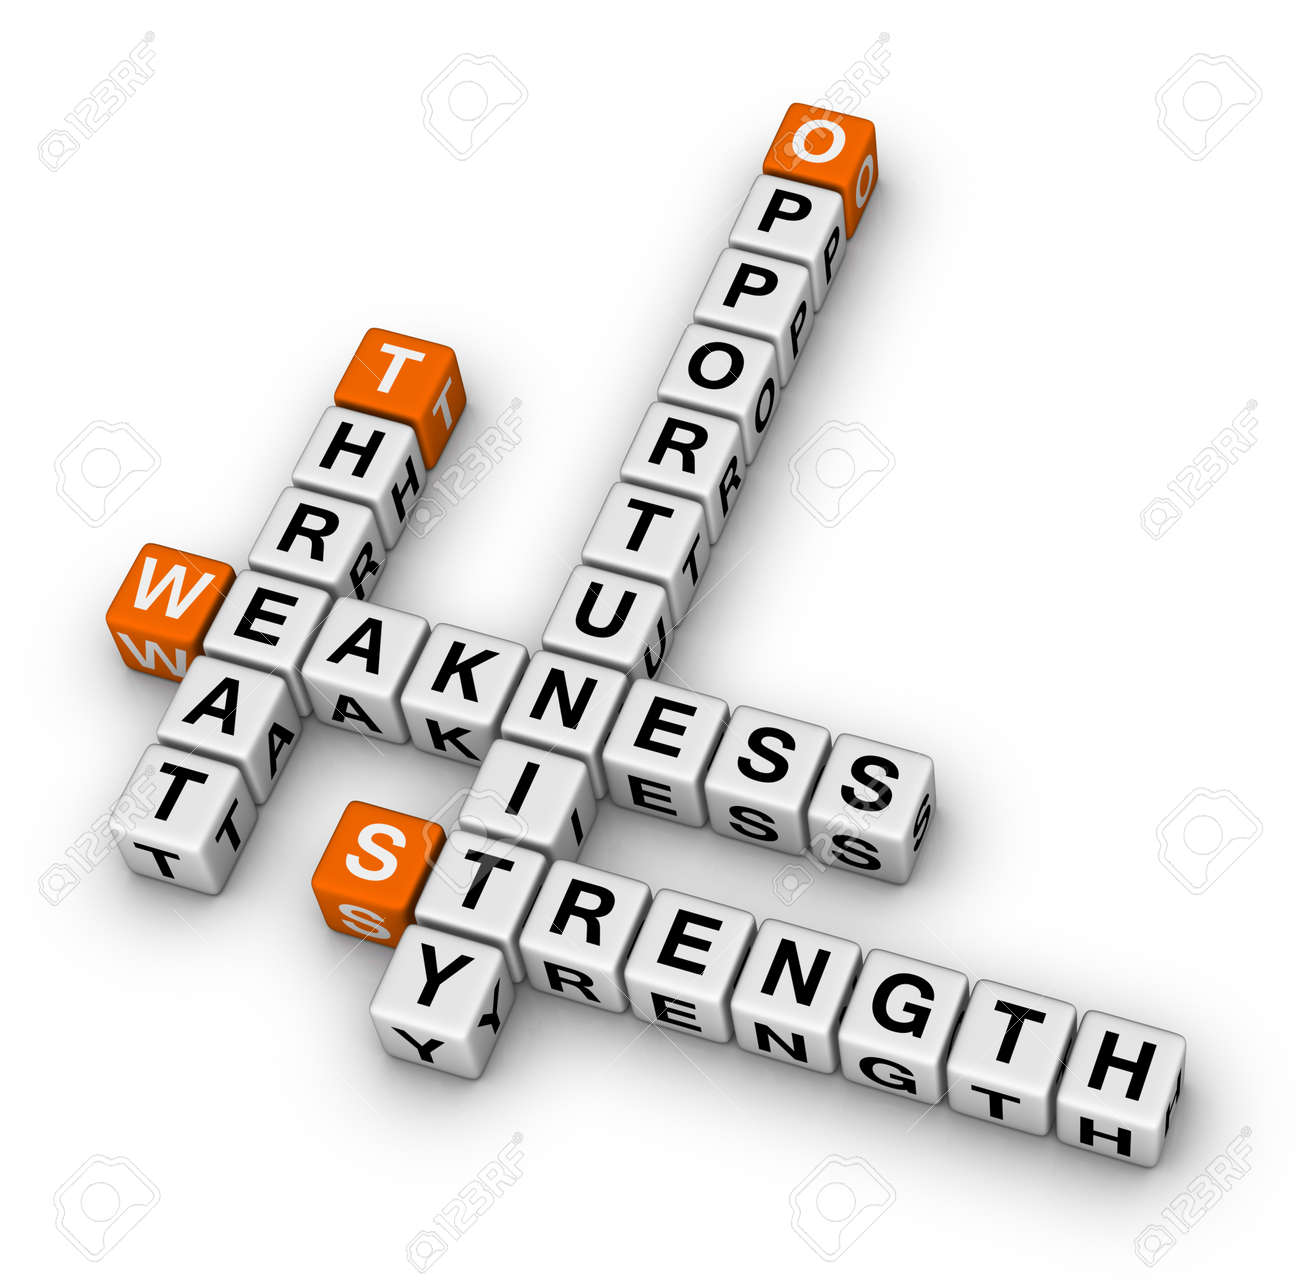 swot strengths weaknesses opportunities and threats analysis swot strengths weaknesses opportunities and threats analysis strategic planning method